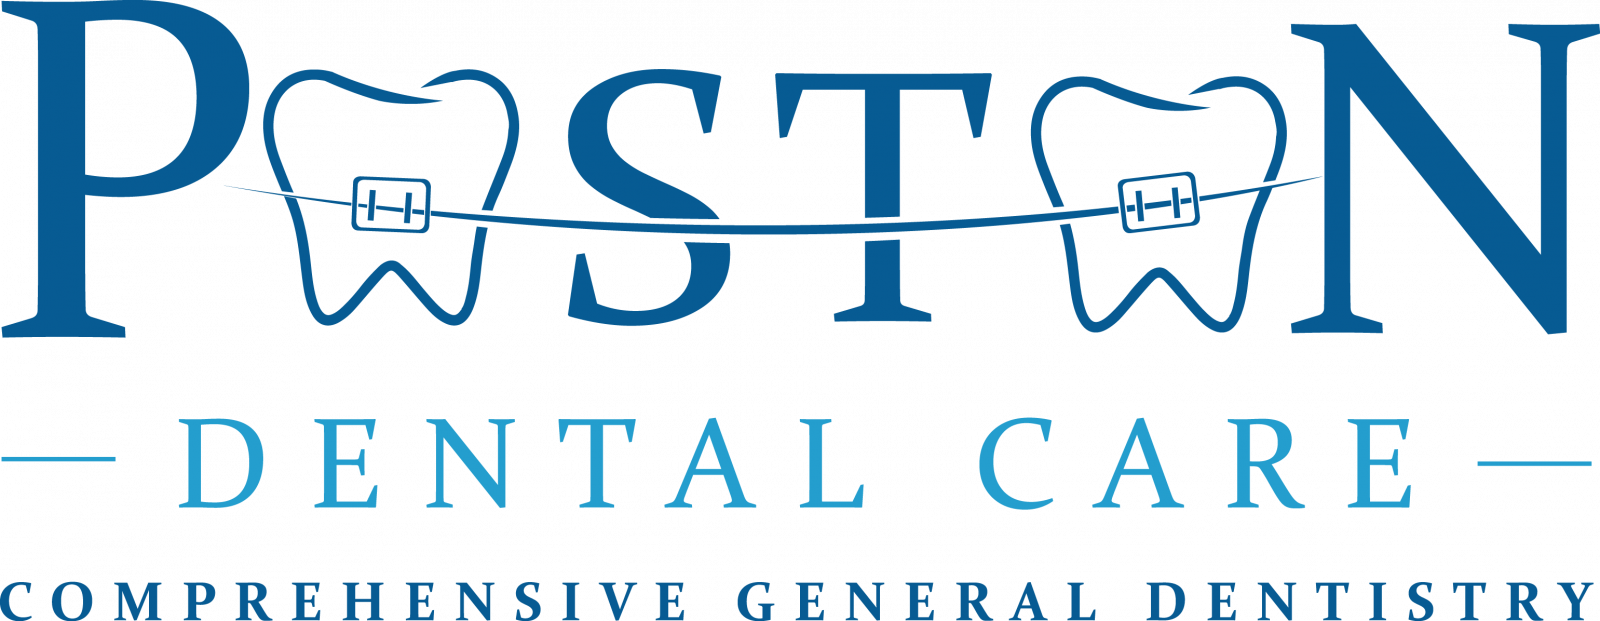 Poston Dental Care